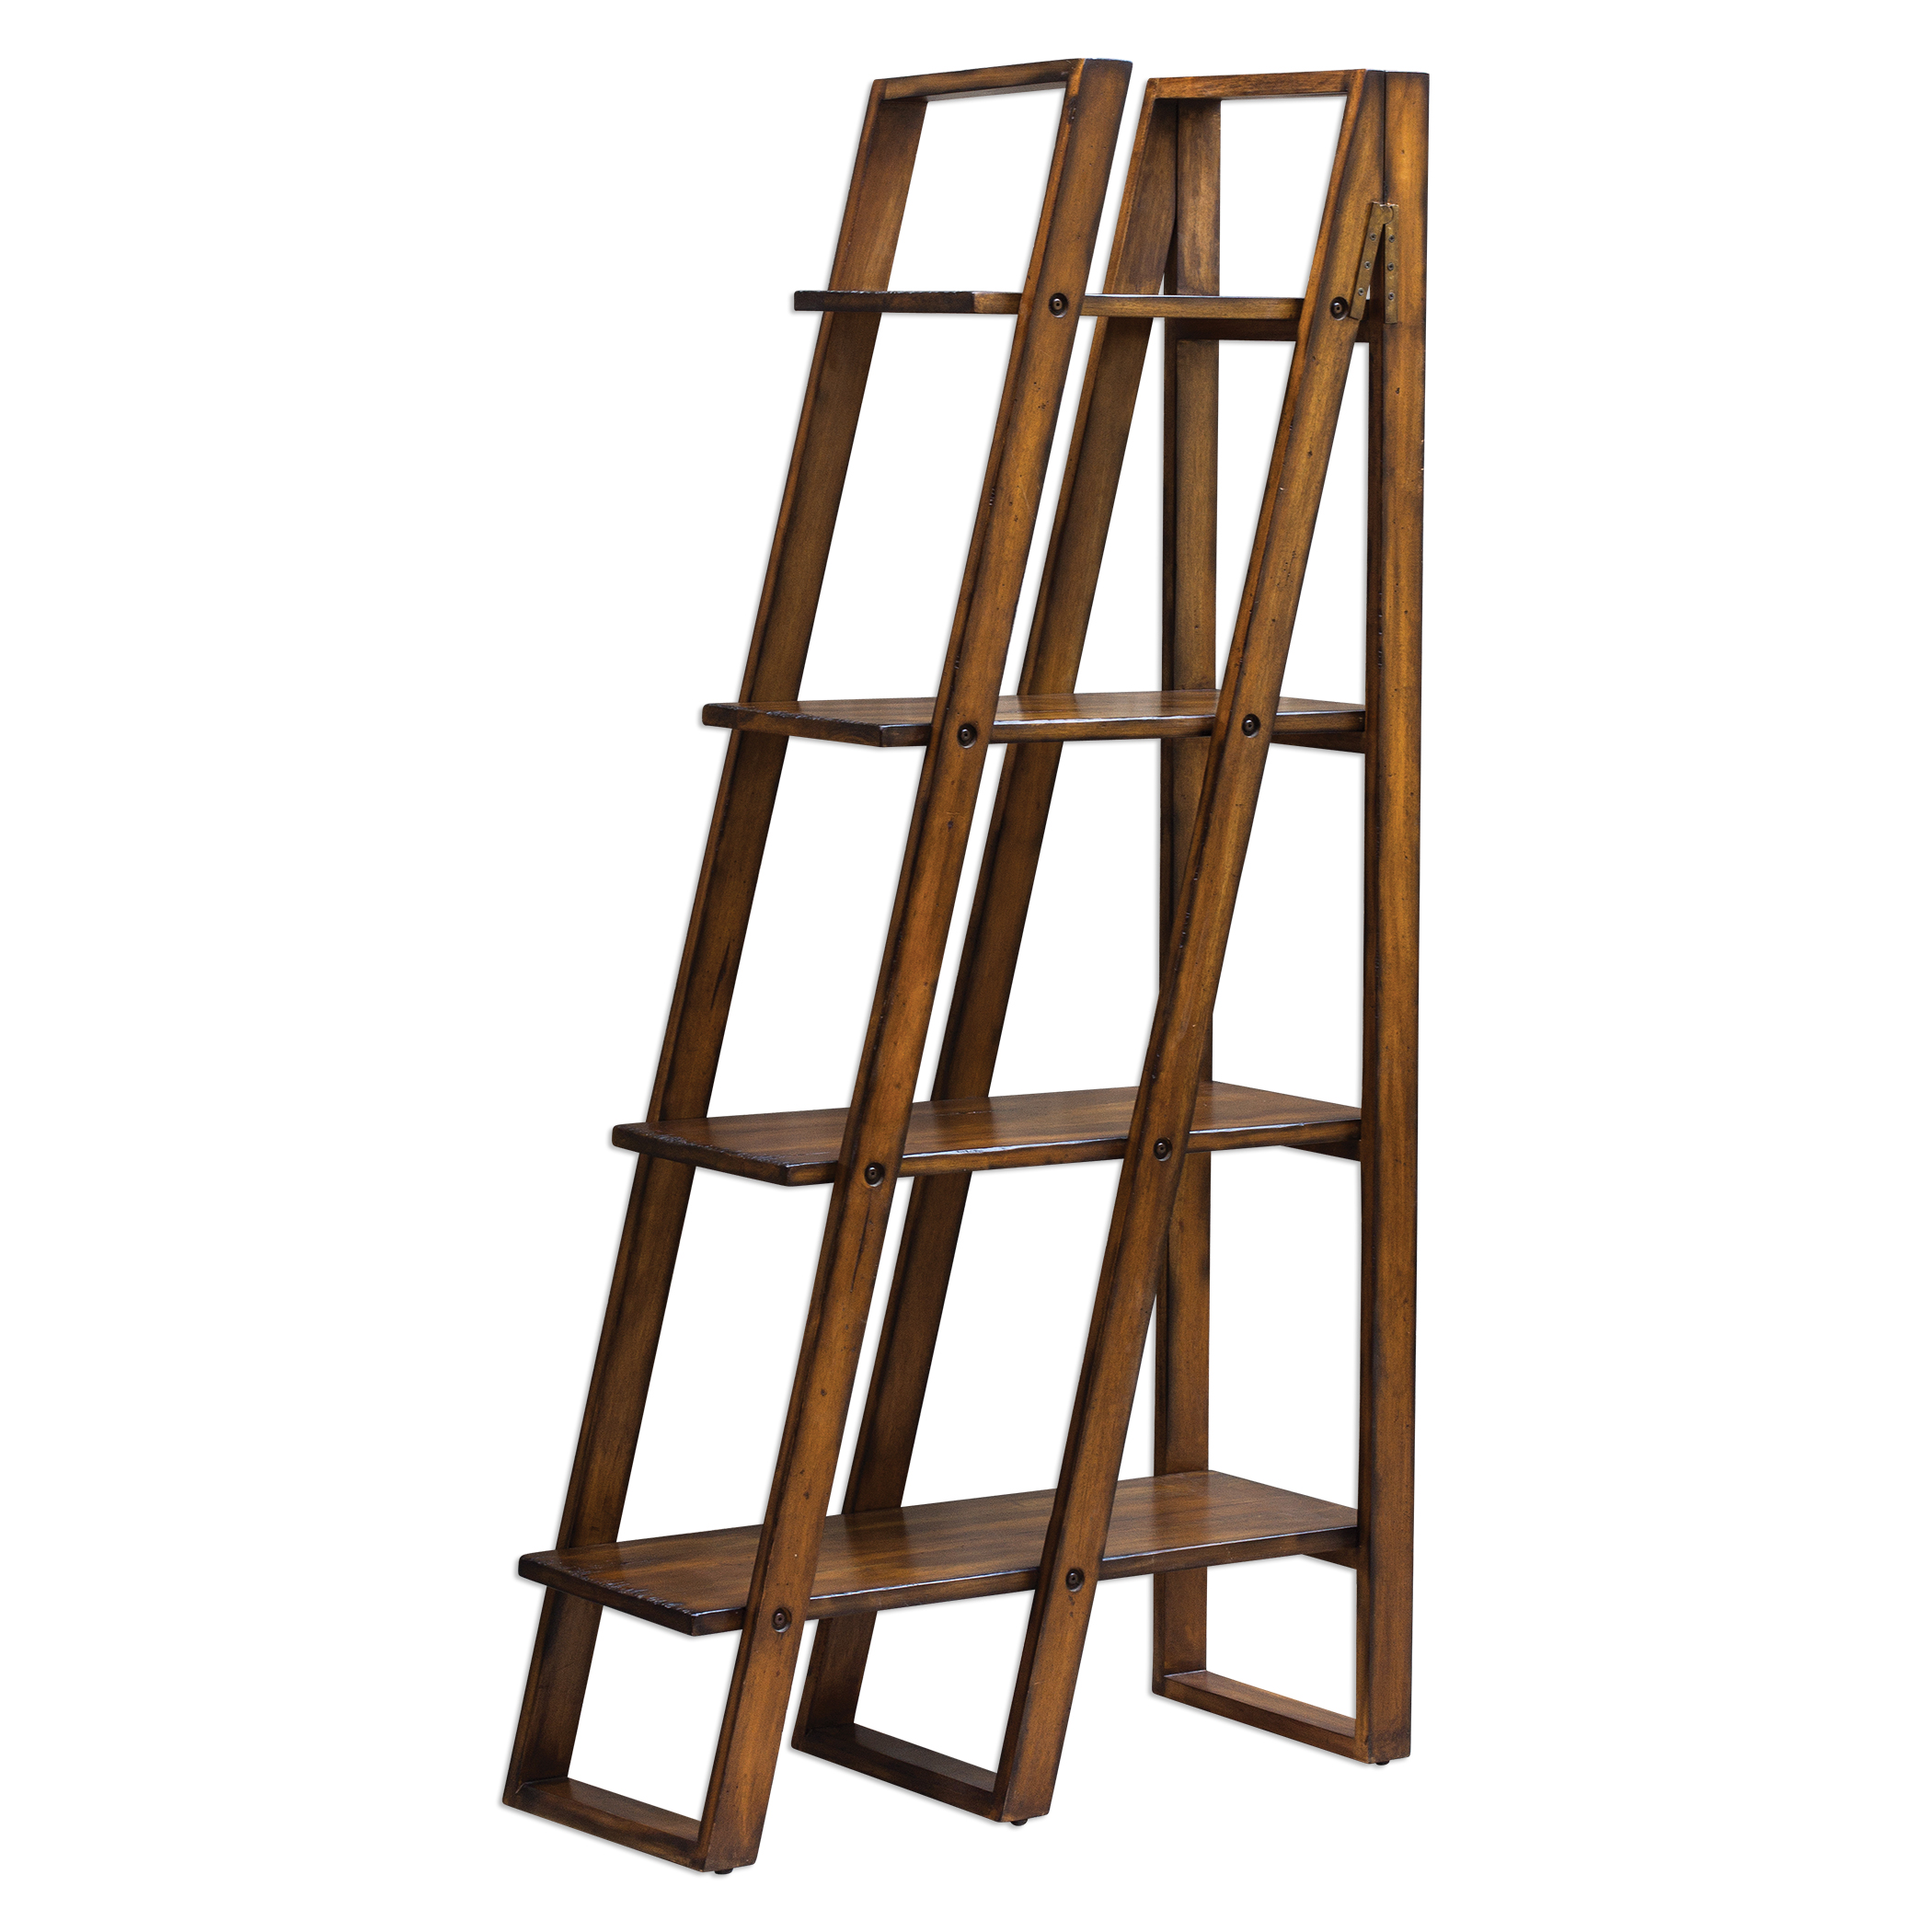 Uttermost Accent Furniture Cacey Wood Etagere - Item Number: 25711